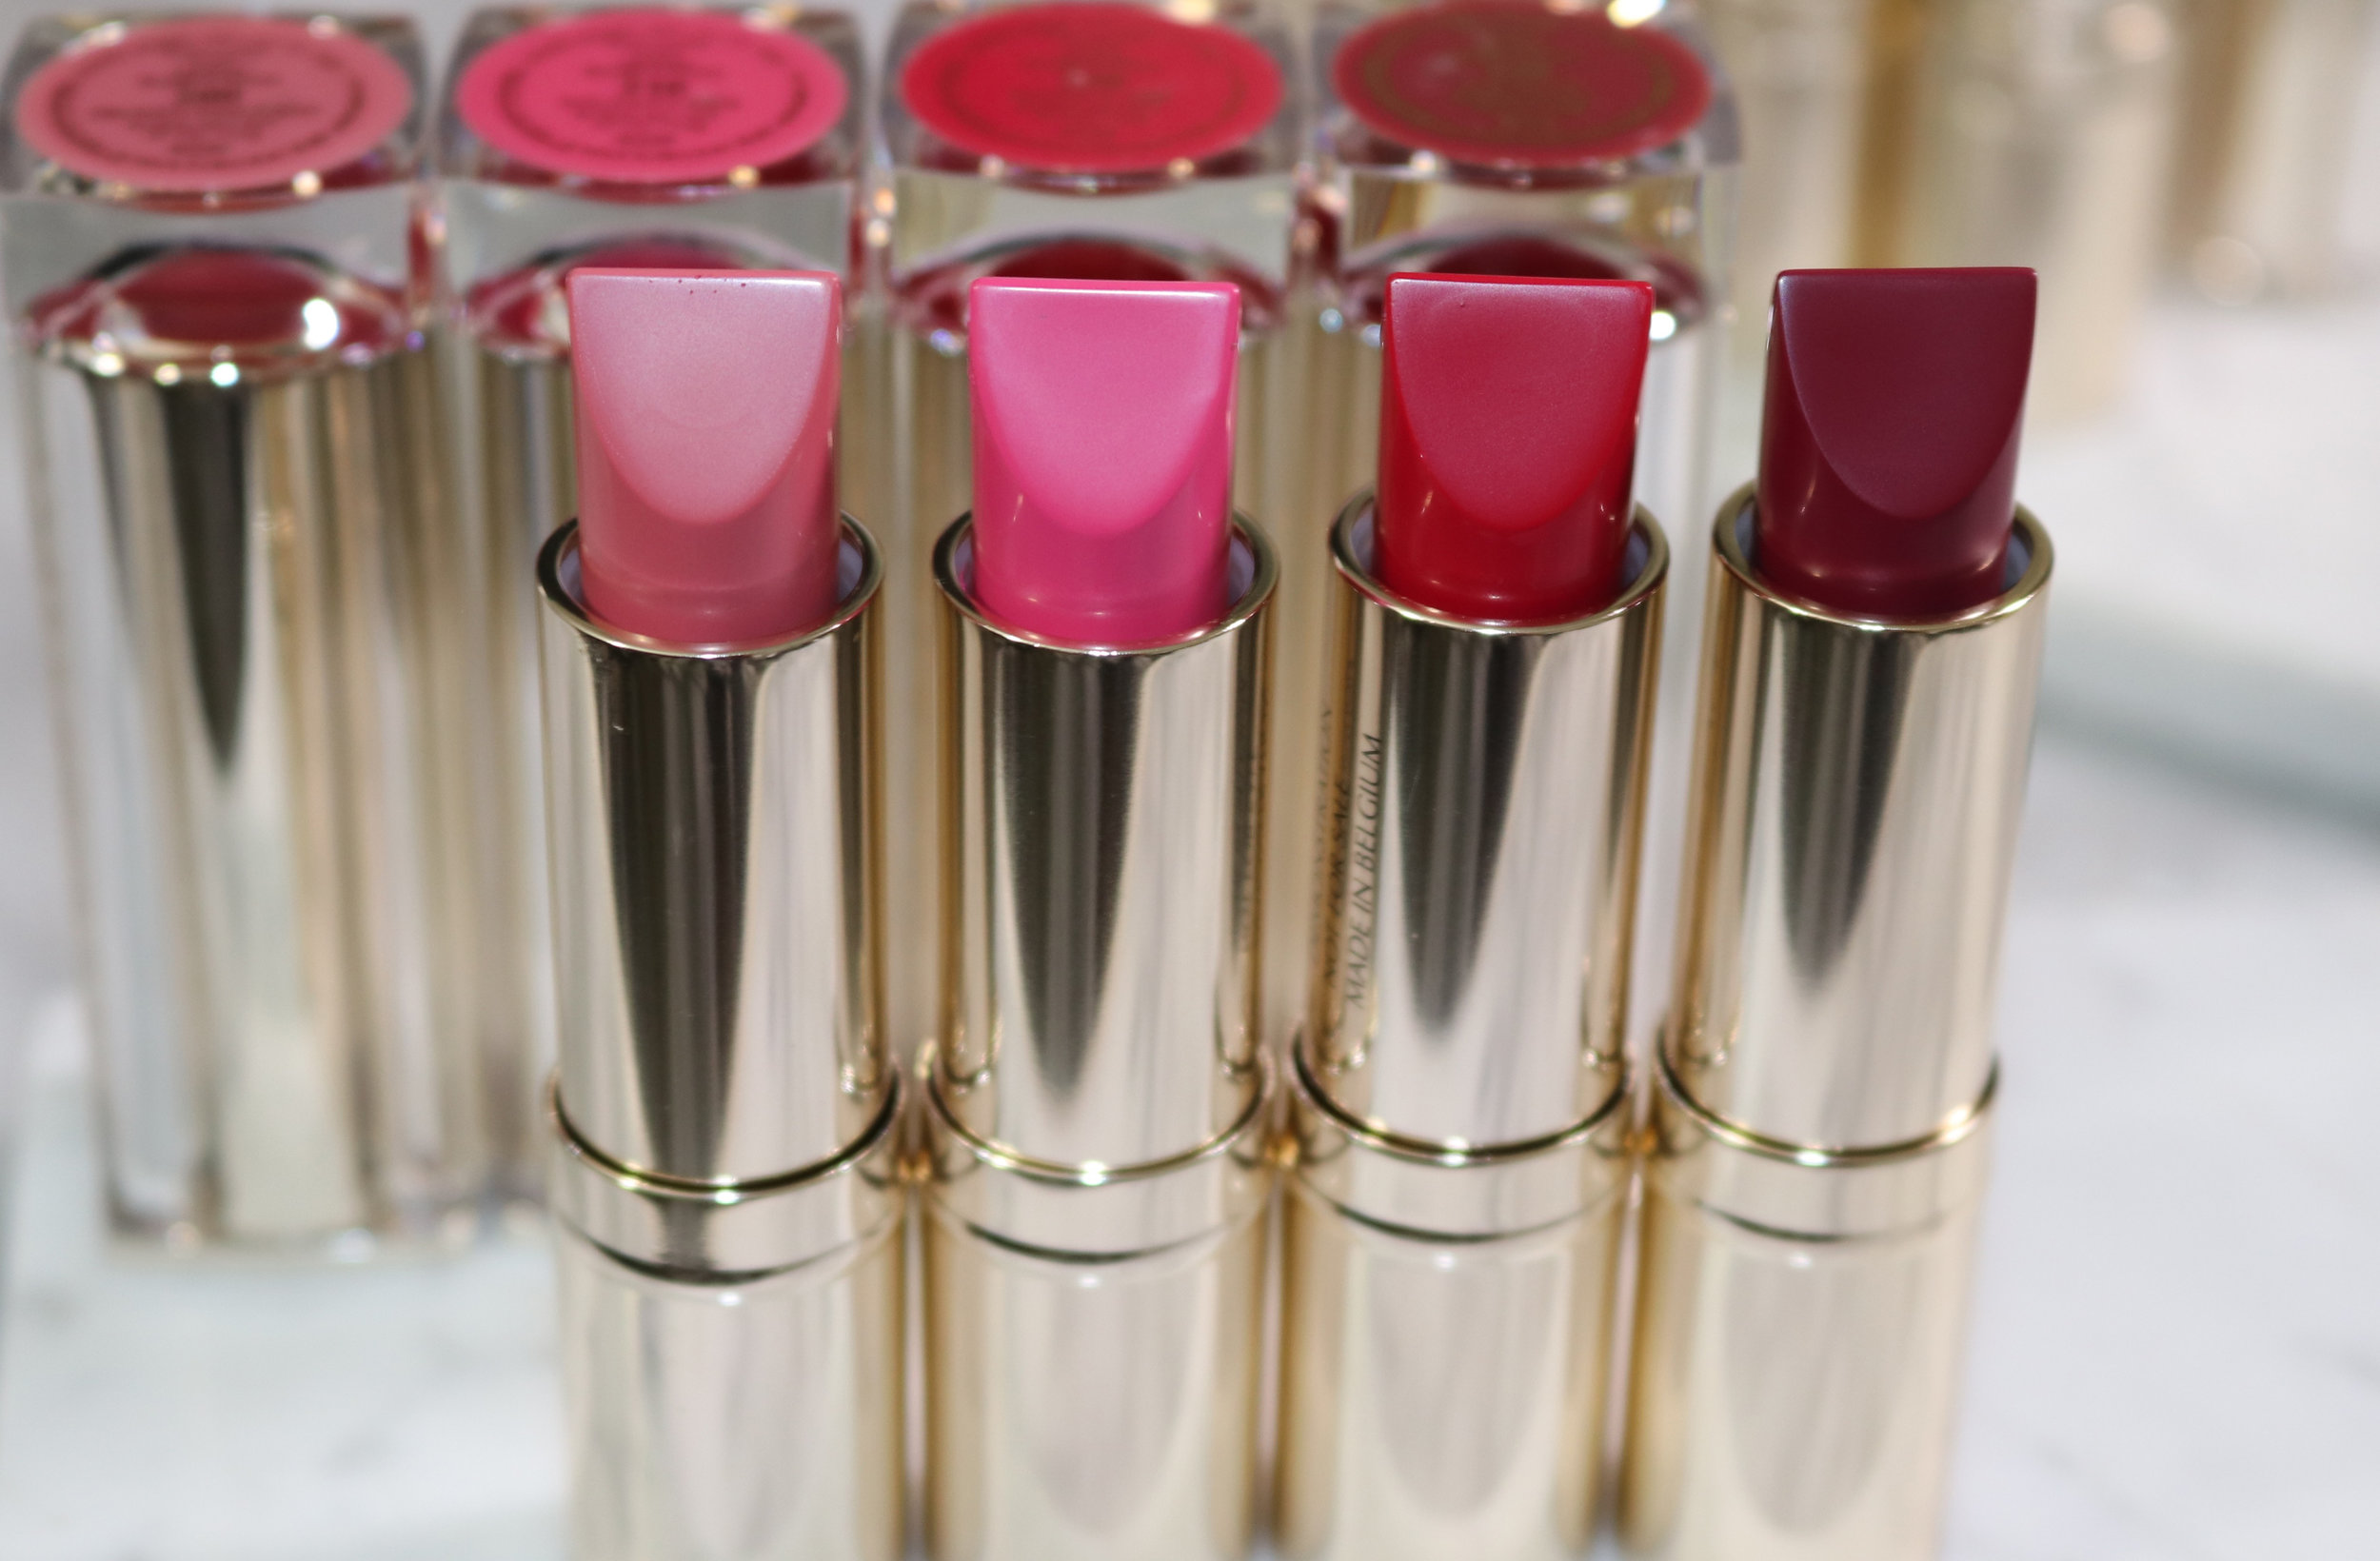 Swatches L to R:200 Proven Innocence (matte), 210 Naughty Nice (matte), 220 Shock & Awe (matte), 230 Juiced Up (matte)